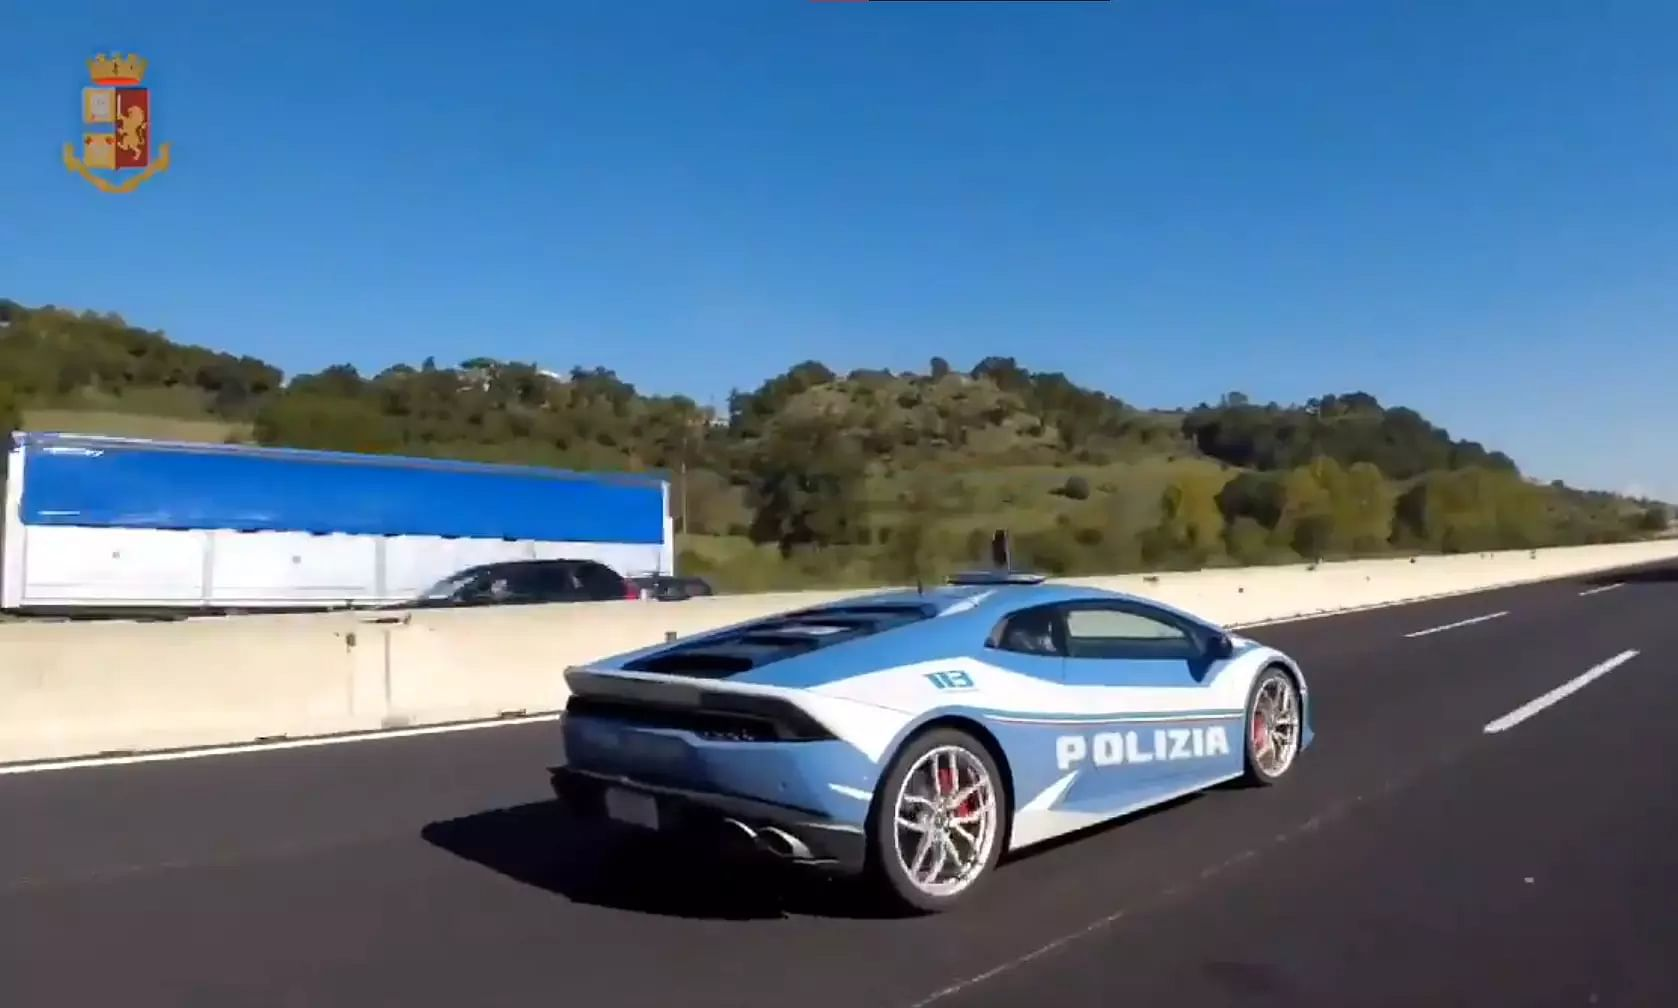 Italy: Police use Lamborghini to deliver a kidney in two hours across 500 km